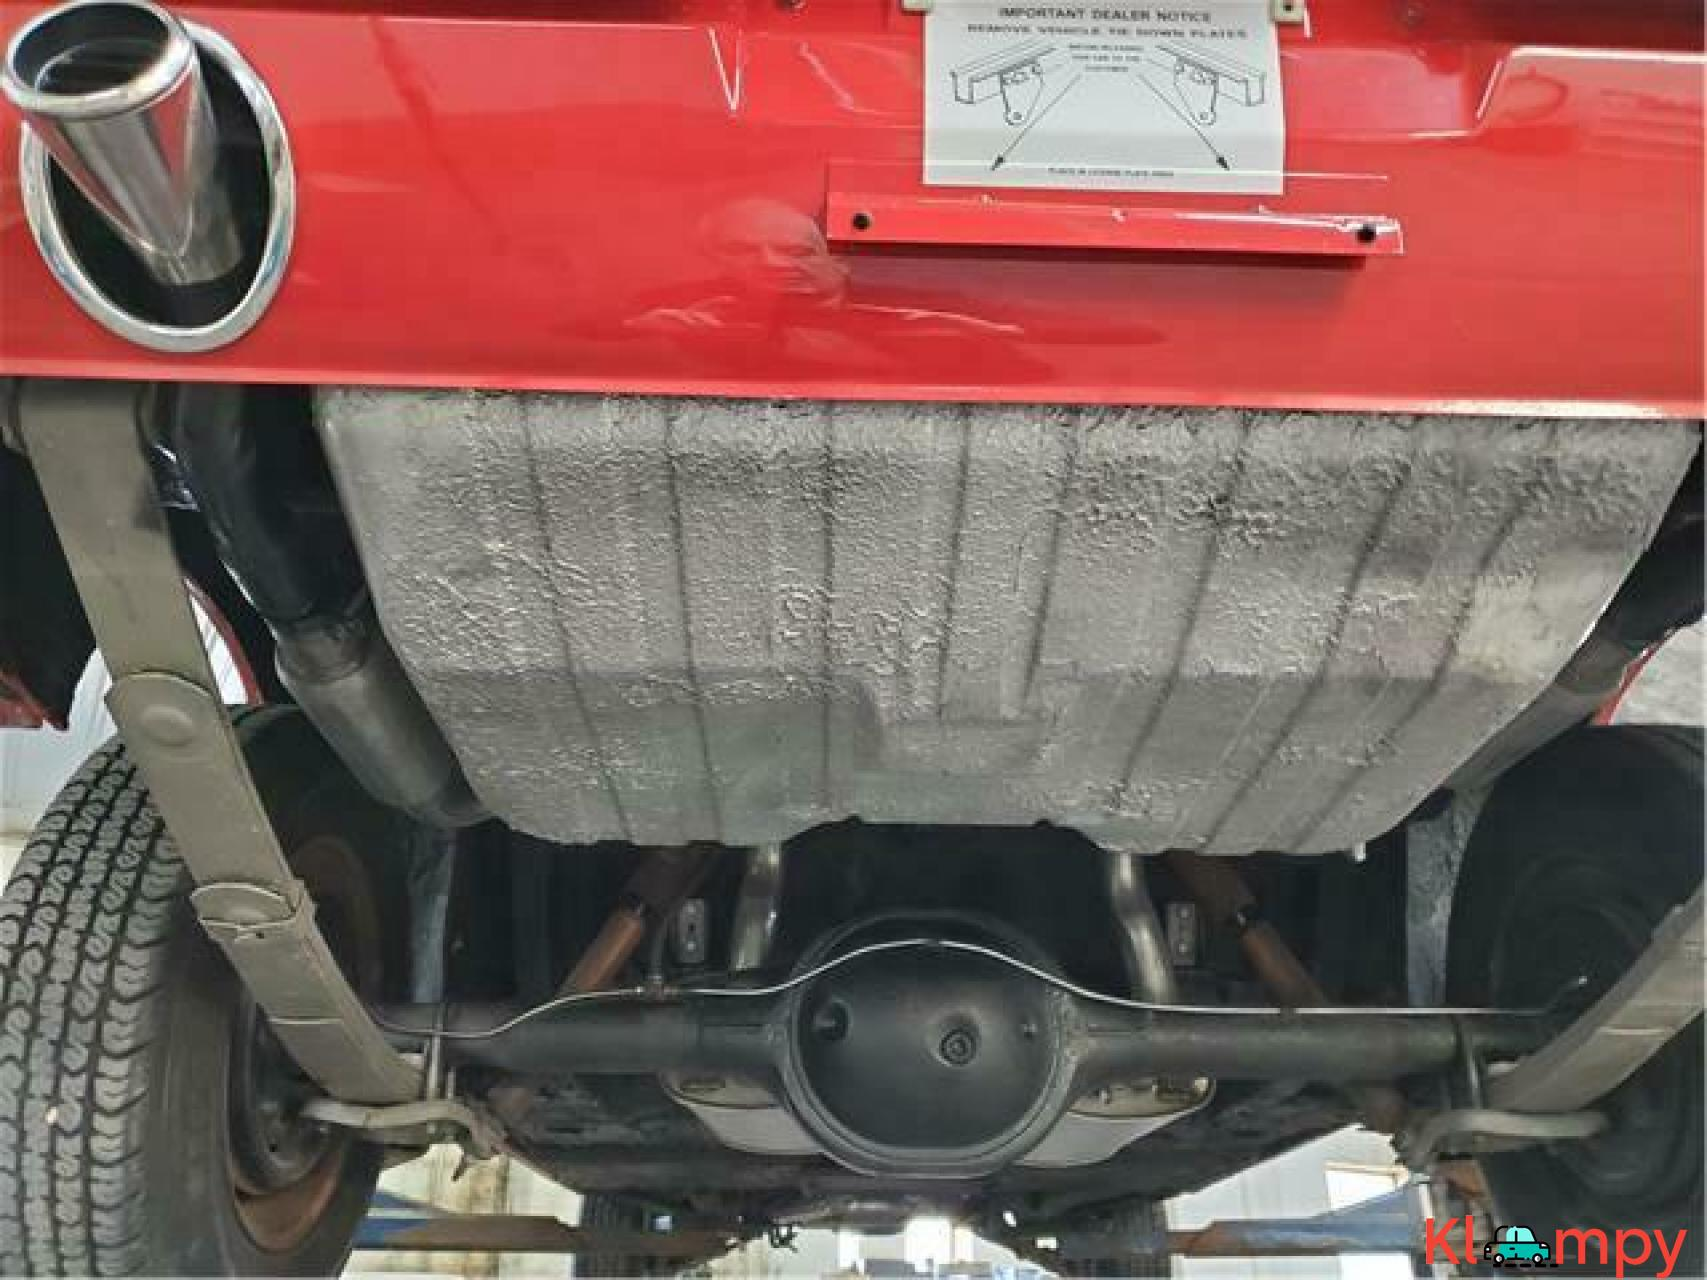 1965 Ford Mustang Rear Wheel Drive - 14/20